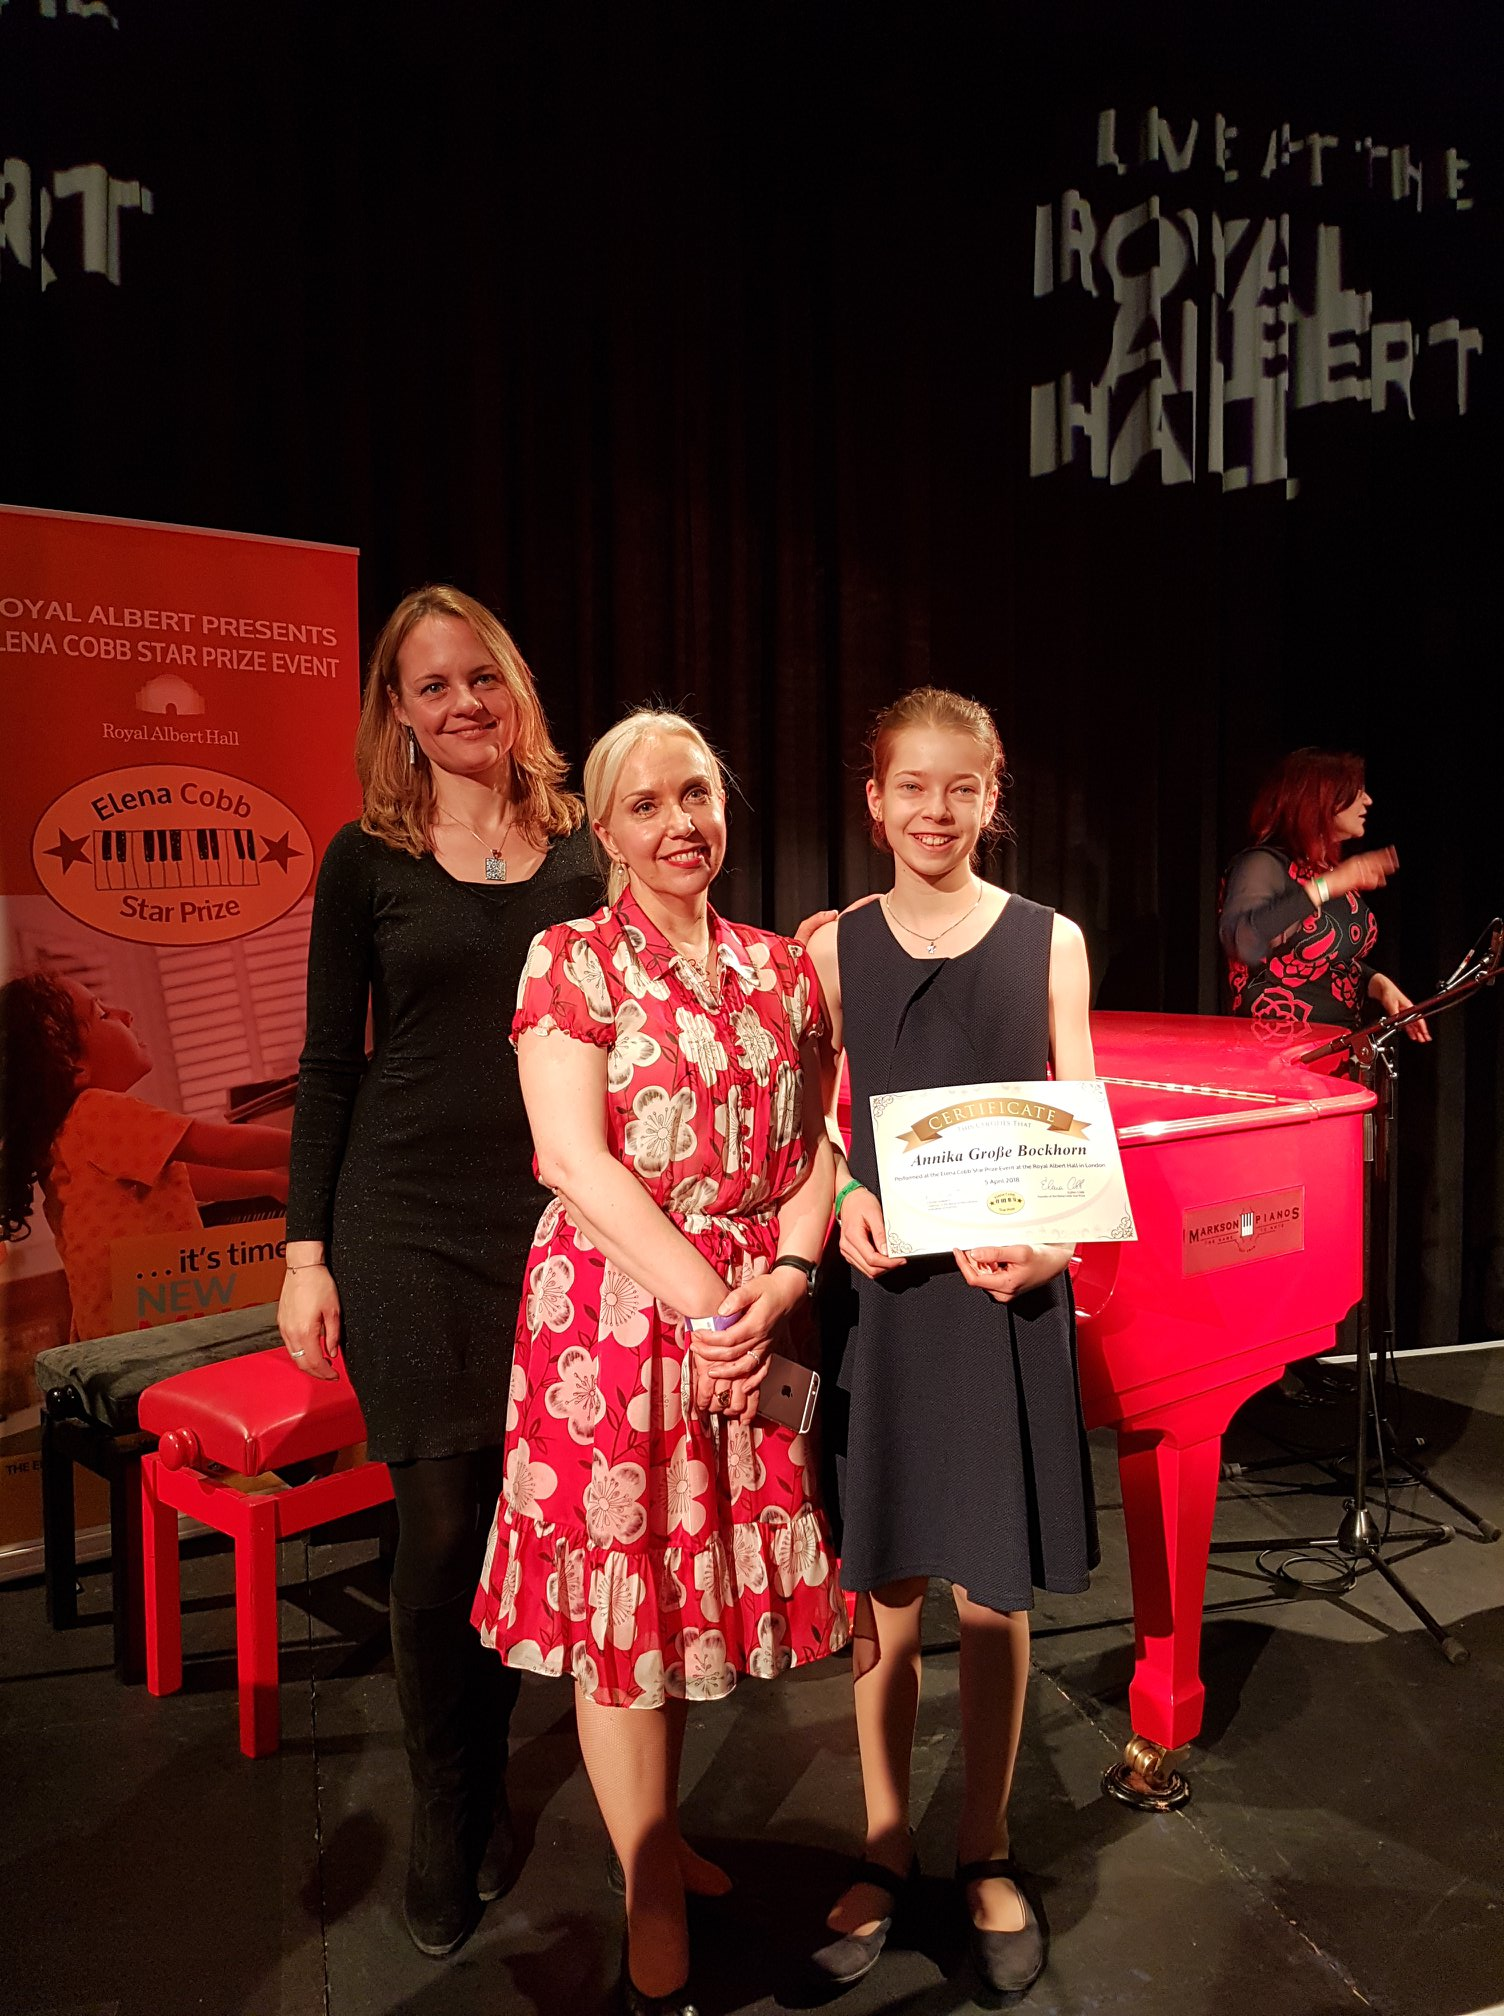 Elena Cobb with Tatyana Bayliyeva (USA) and her students at the Elena Cobb Star Prize